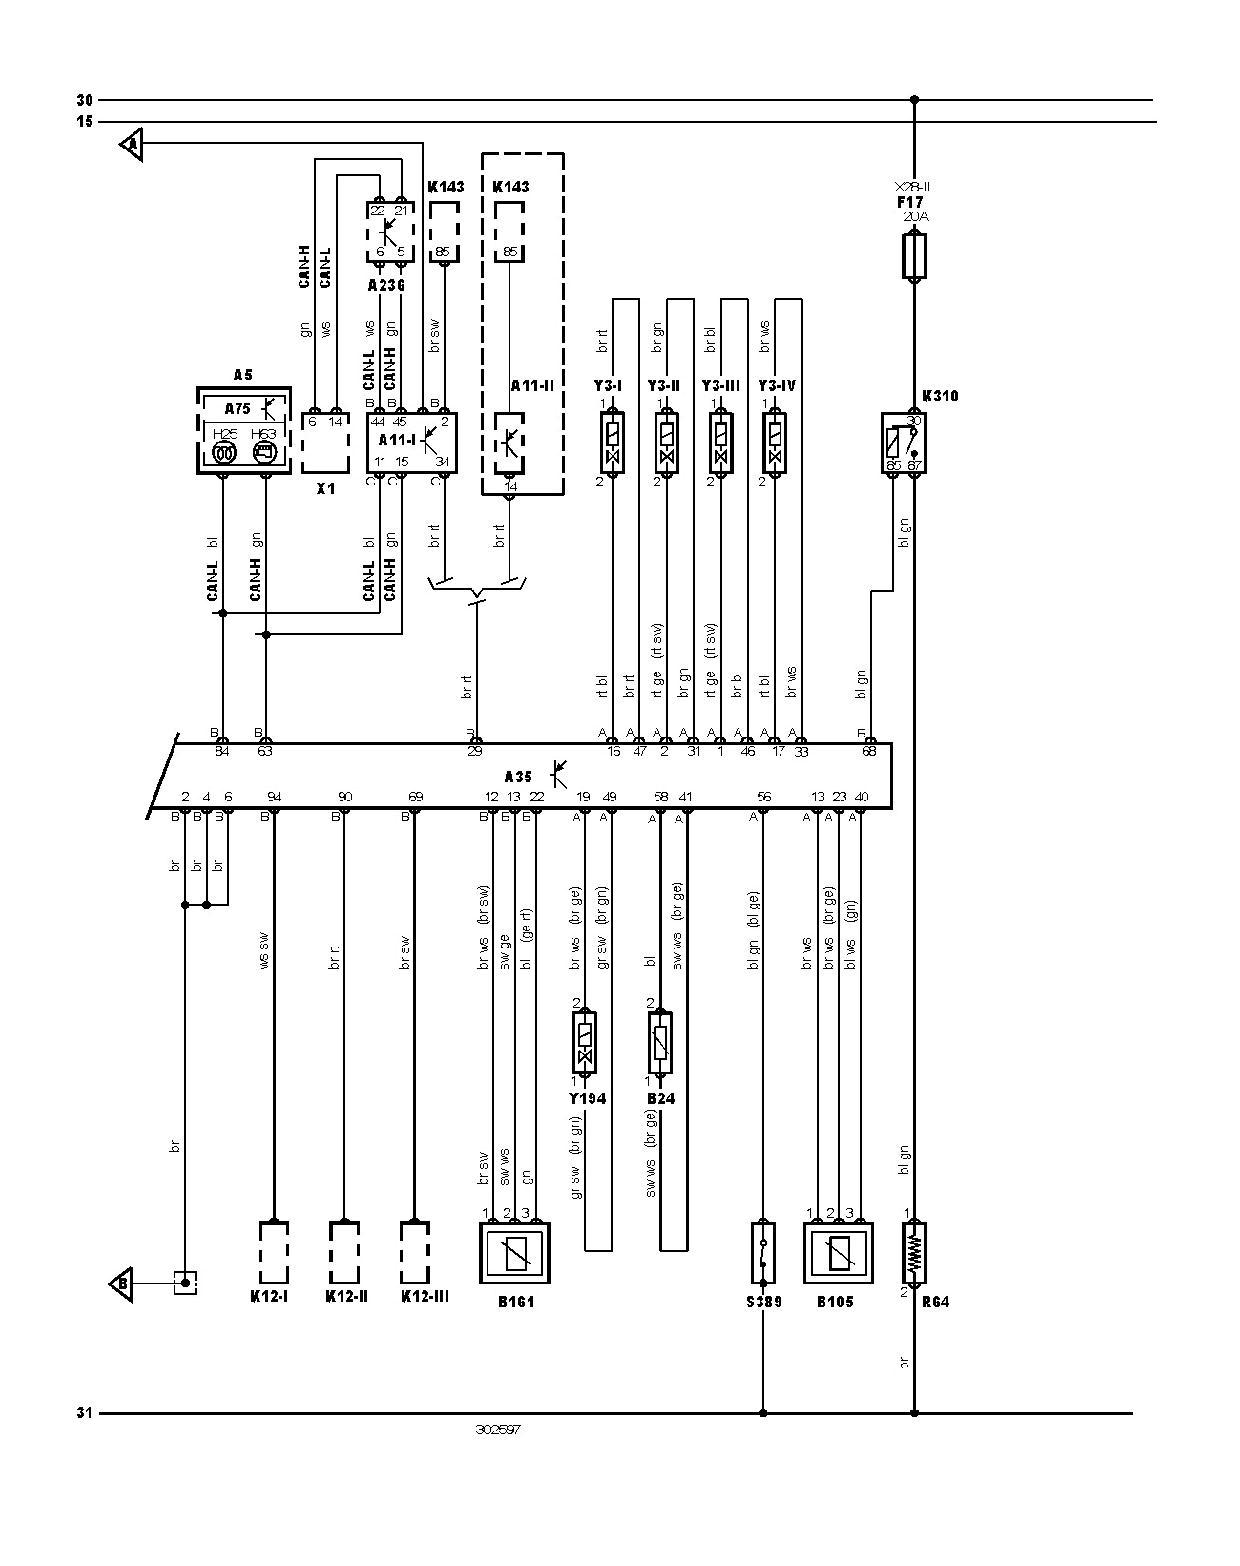 opel astra wiring diagram spst lighted rocker switch h cdti auto